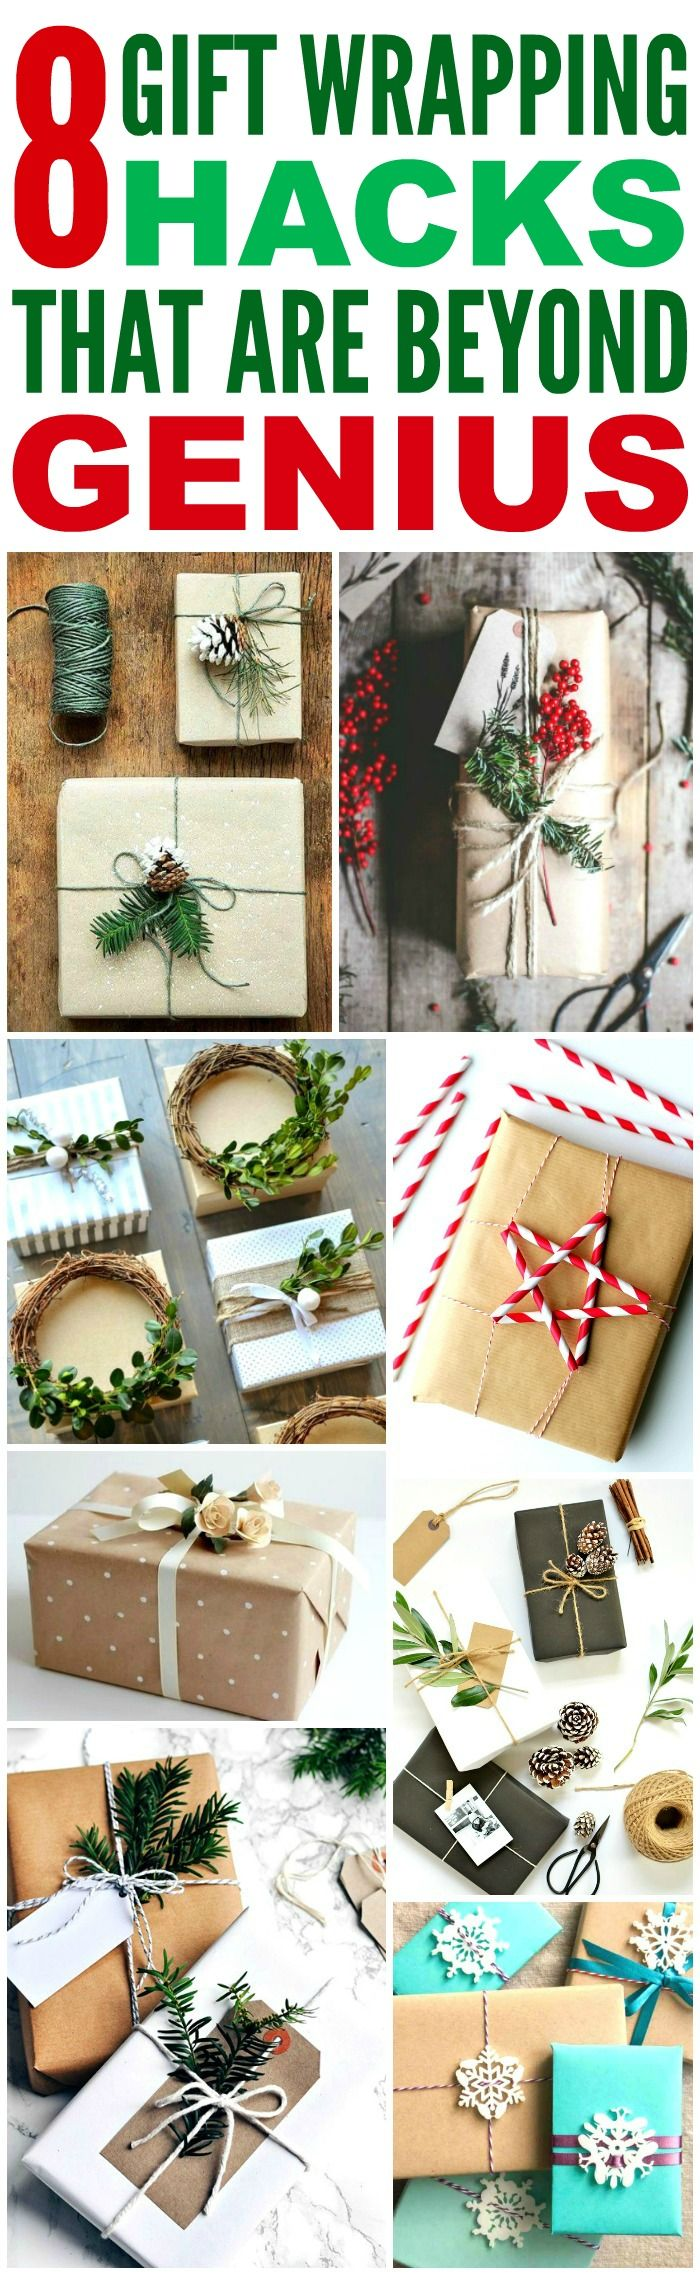 These 8 Gift Wrapping hacks are GENIUS! I'm so glad I found these AMAZING tips! Now I can impress my friends and family with beautiful presents! Definitely pinning!